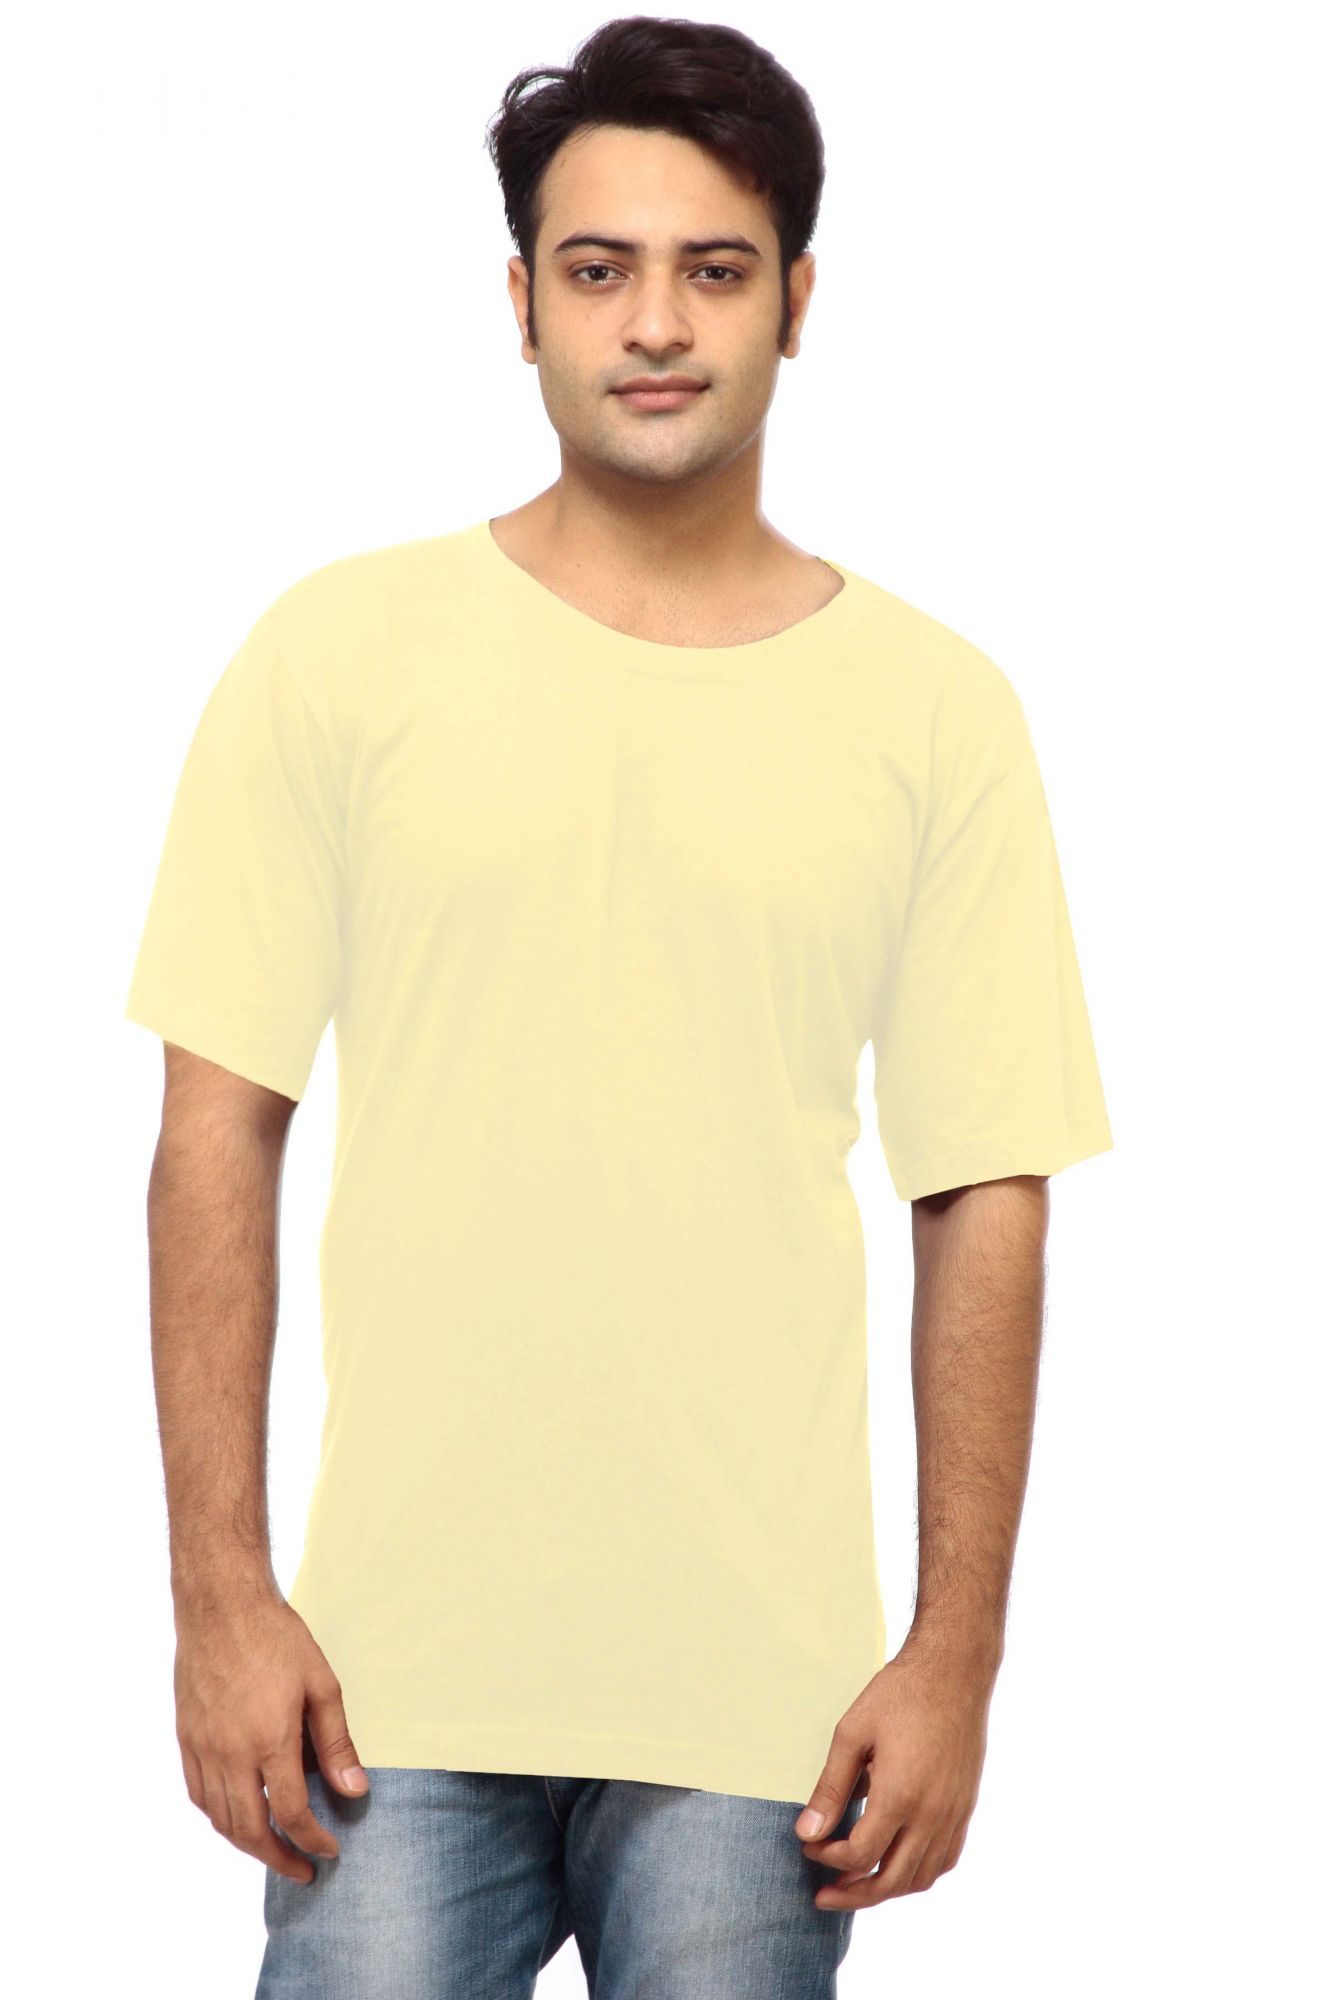 DS Cream Cotton Stylish Slim Fit Round Neck T-shirt